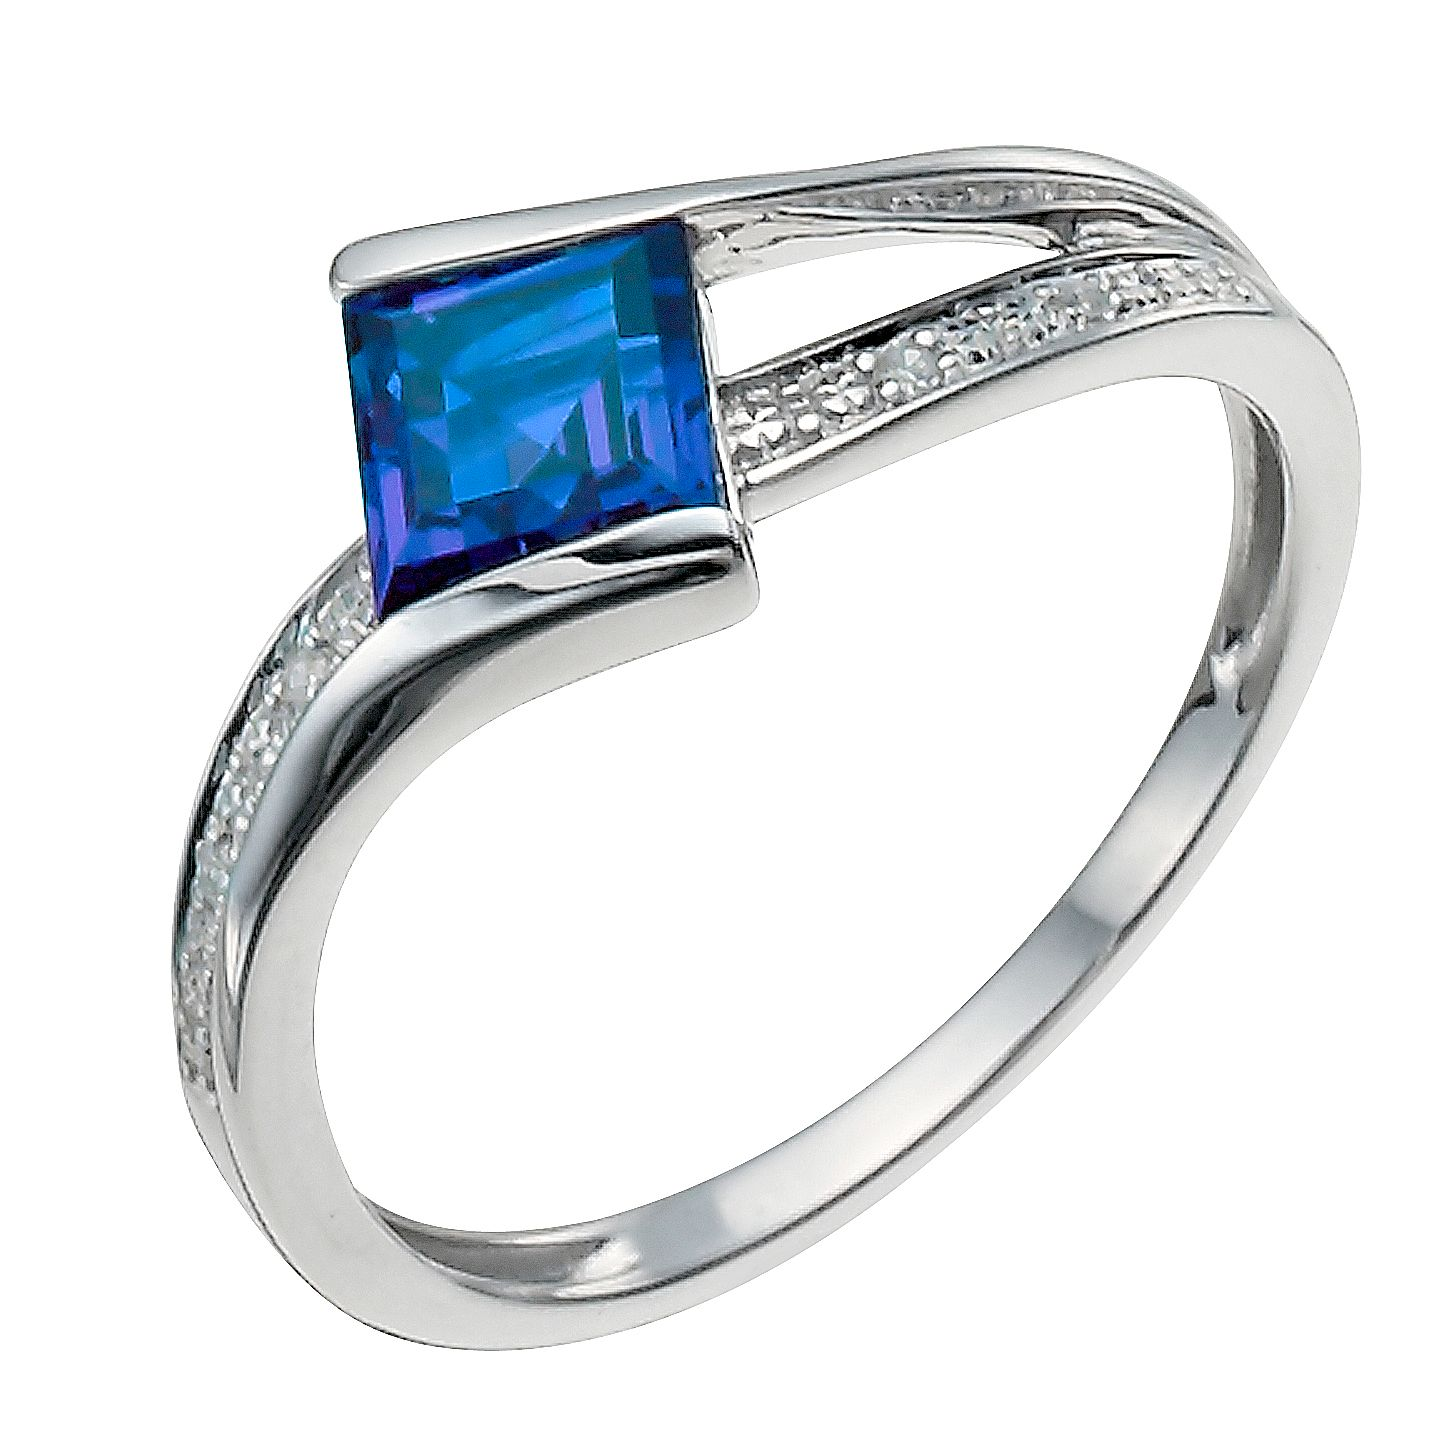 kate rings blue dp sterling engagement created com princess ring silver amazon saffire middleton jewelrypalace diana sapphire